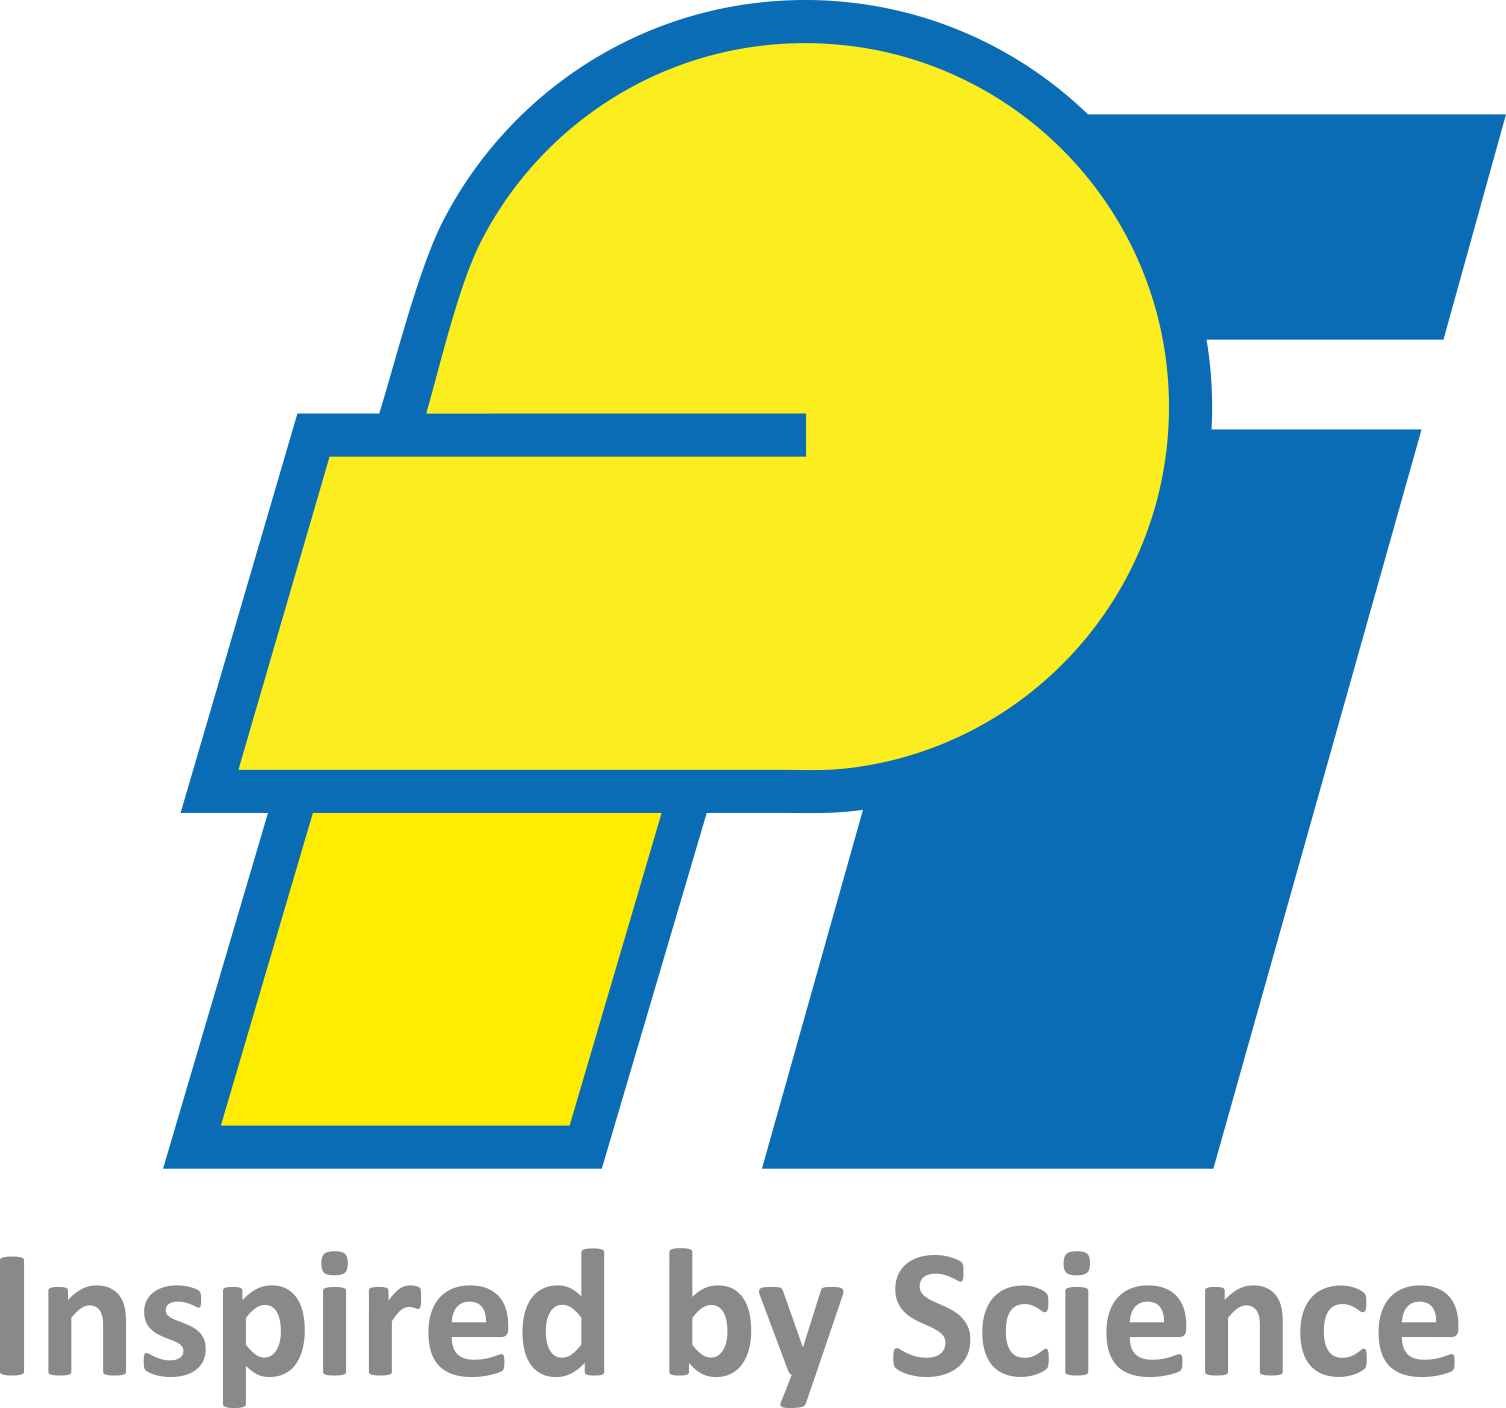 PI Industries: Inspired by Science, Innovation meets Collaboration to build a better tomorrow